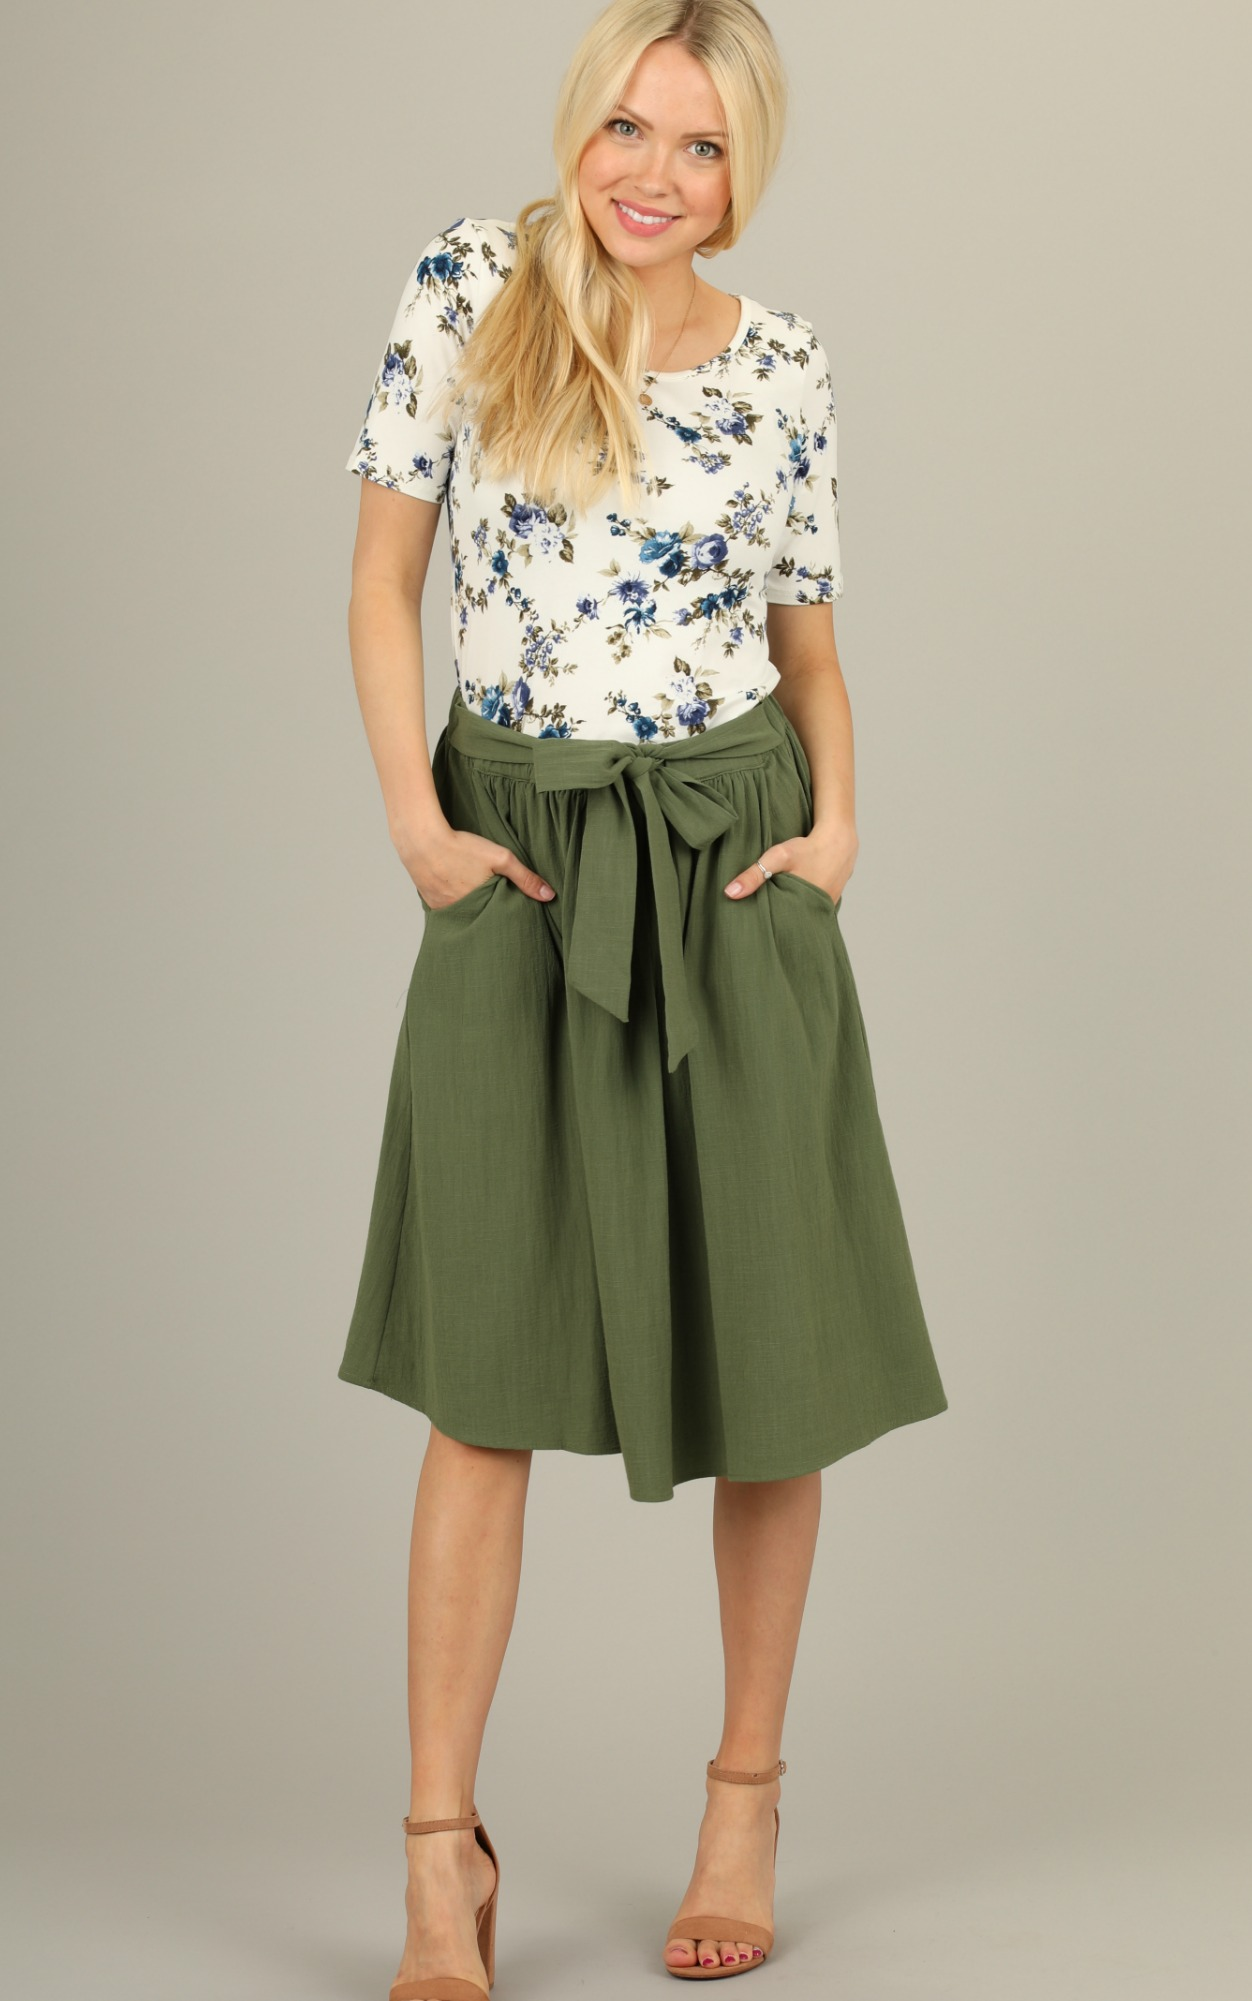 4d37ee225 Modest Women's Skirts and Tops | 69 N Main St | Leven's